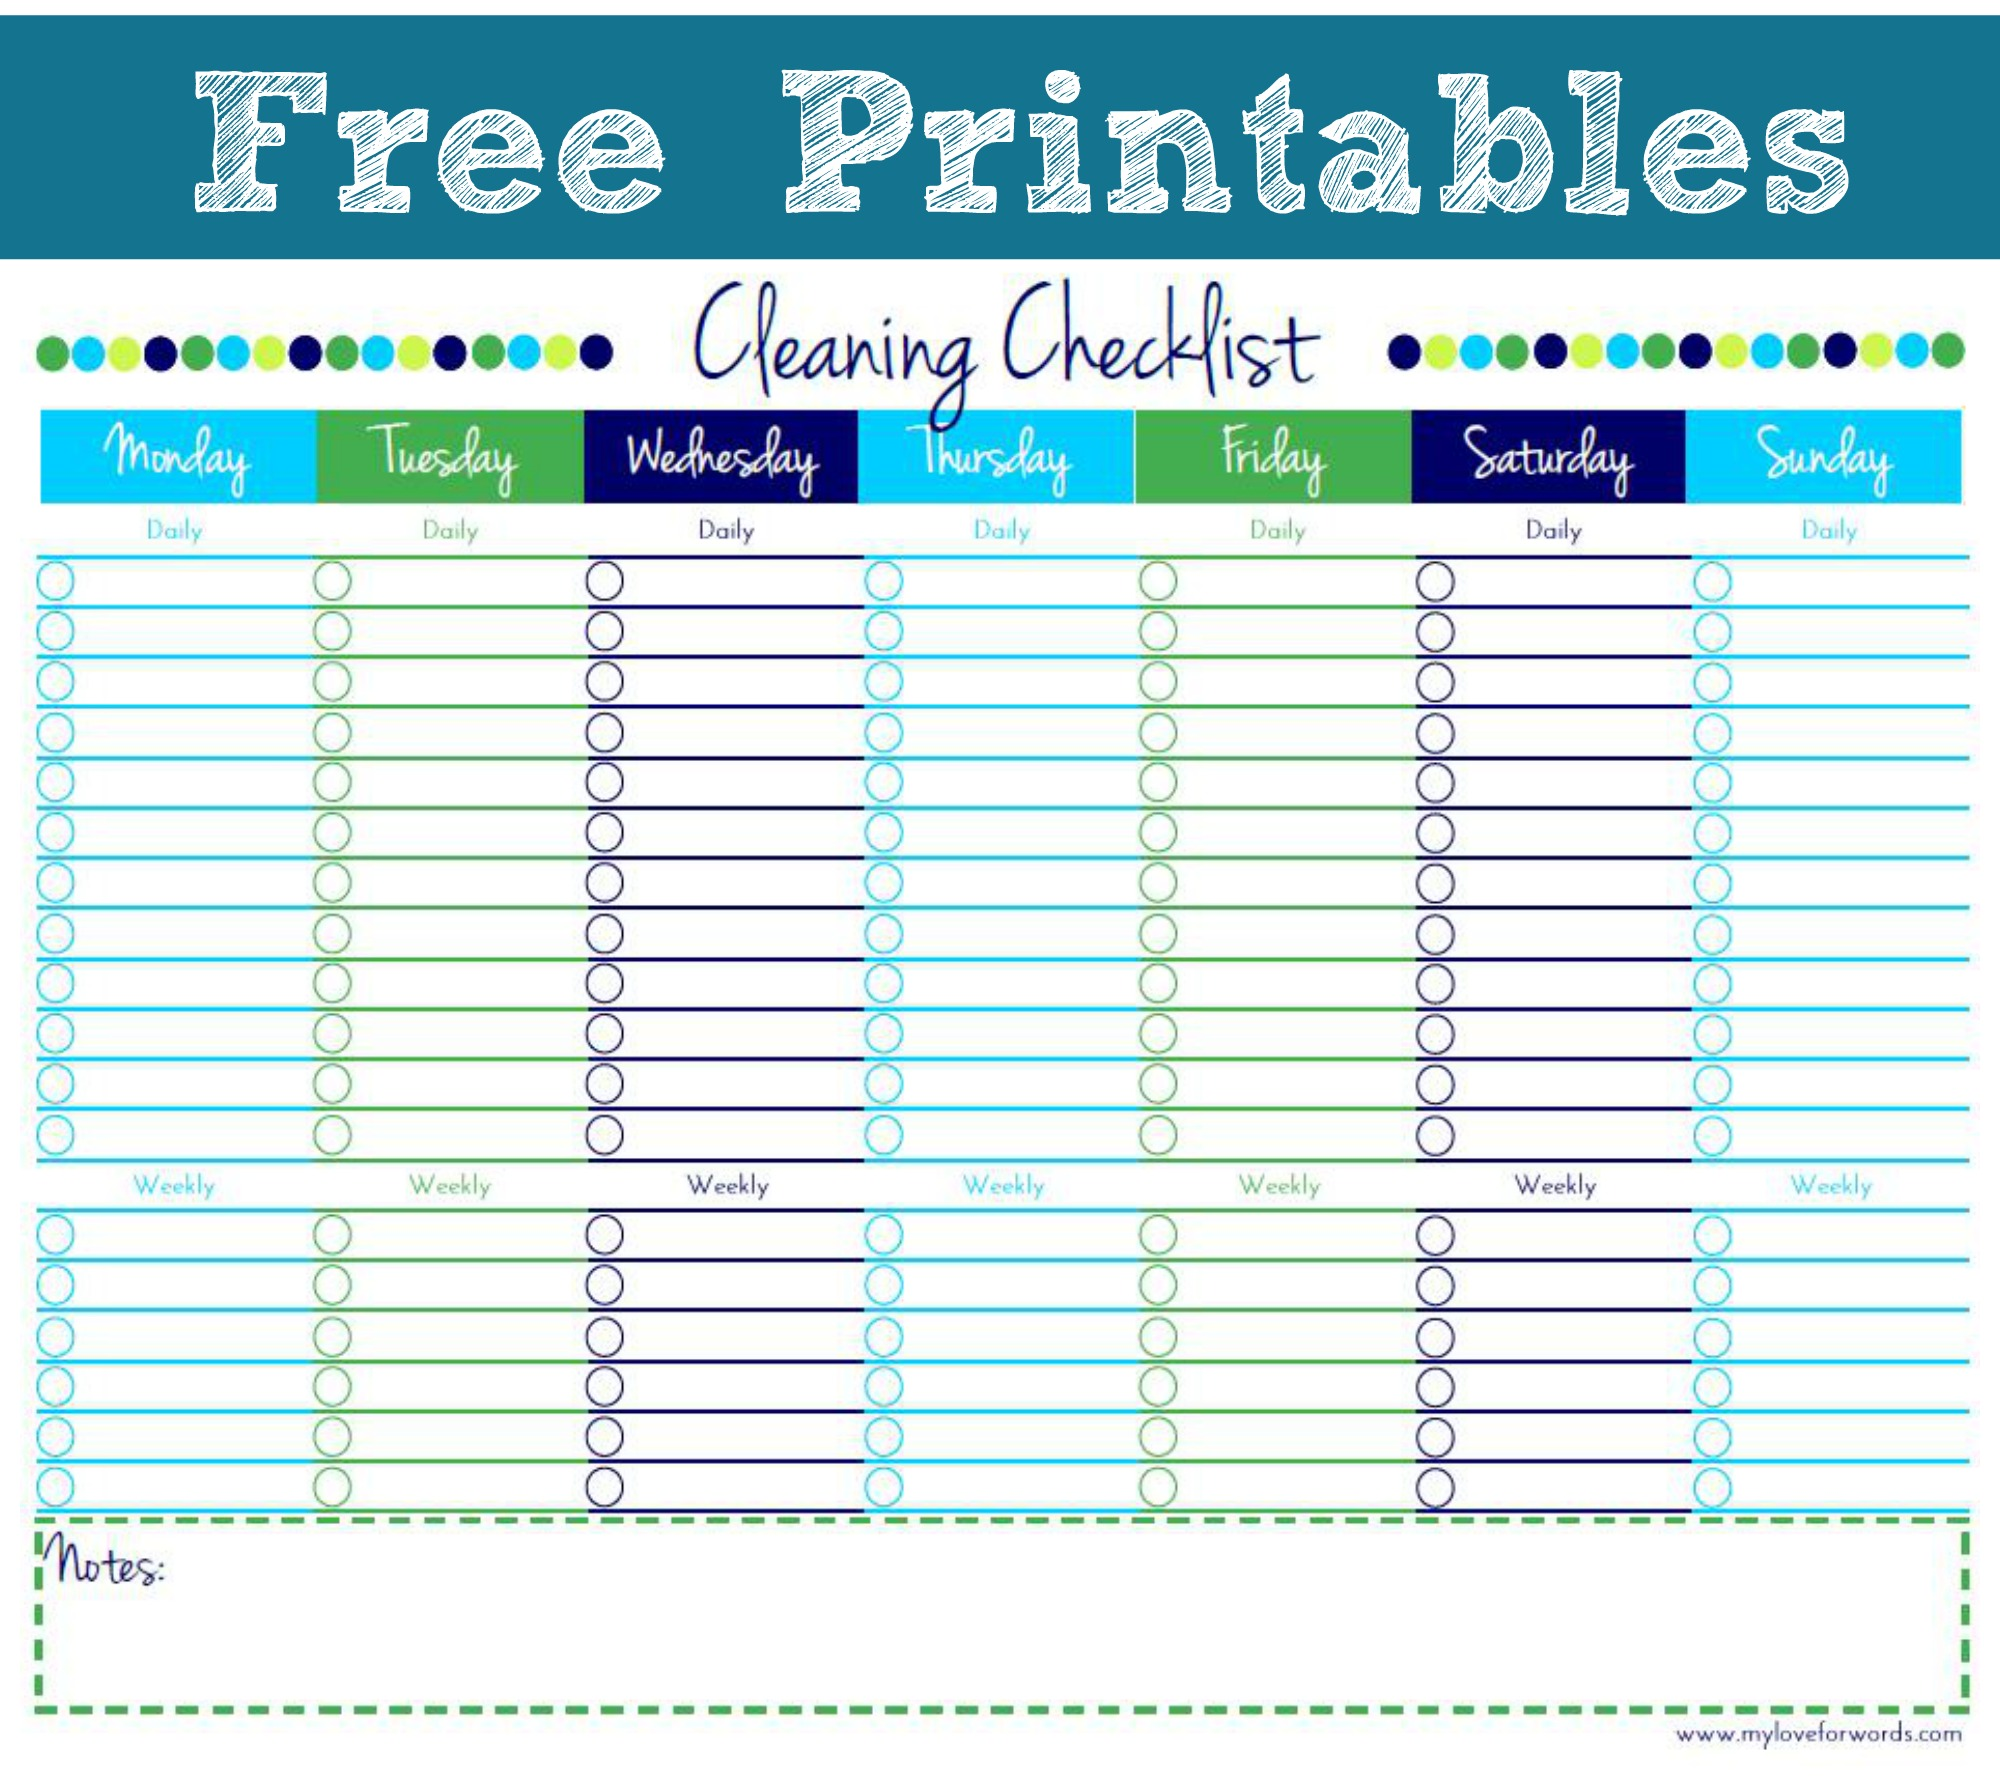 6 Images of Cleaning Checklist Free Printable Template